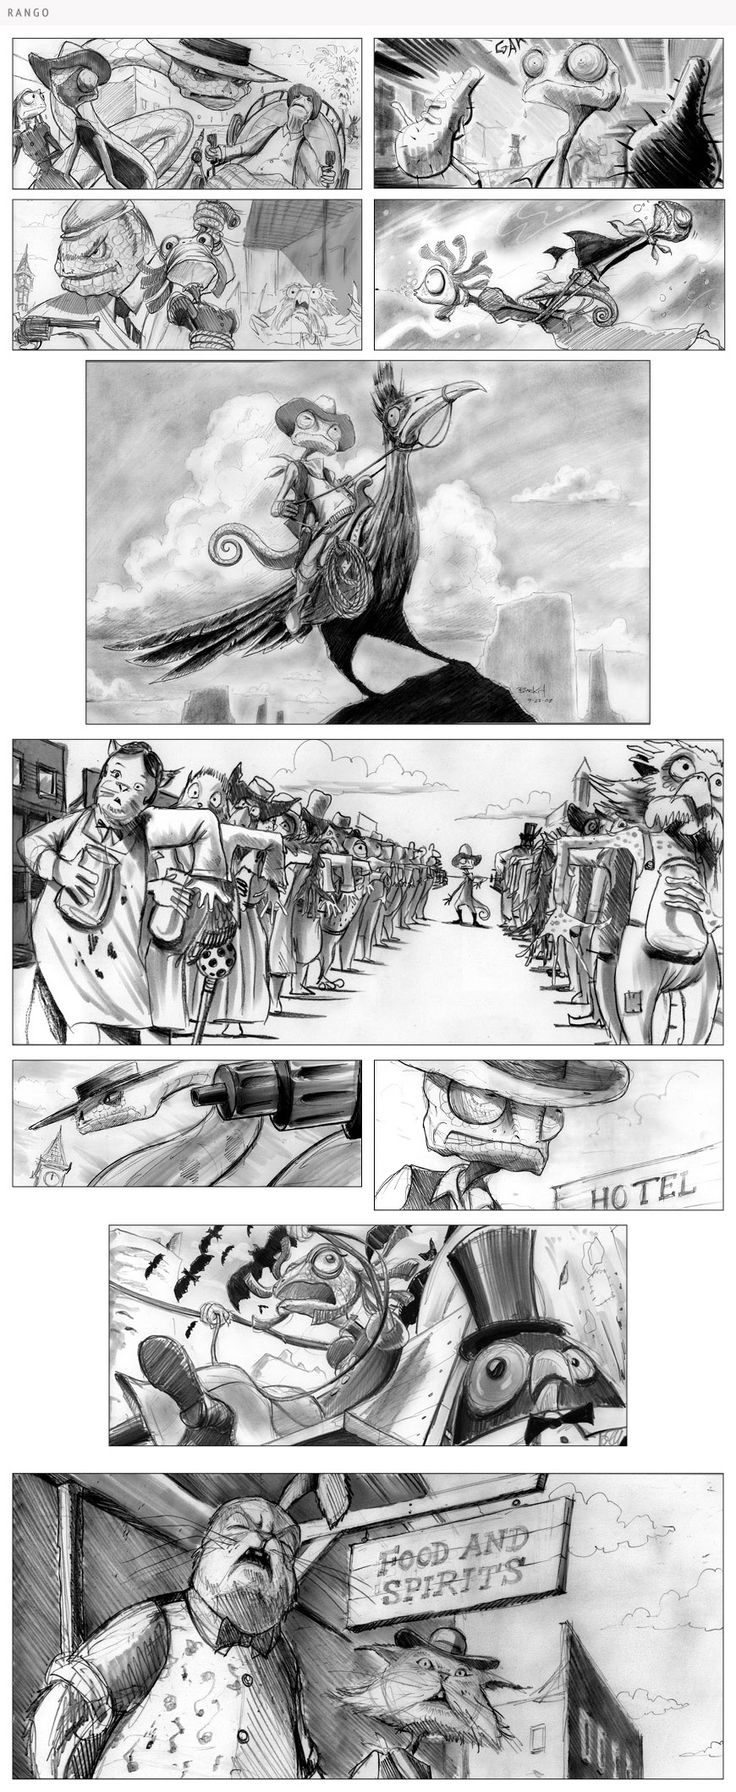 Jim Byrkit | http://storyboardsinc.com/boards/view/id/76/sectionId/2/categoryId/0/#6061